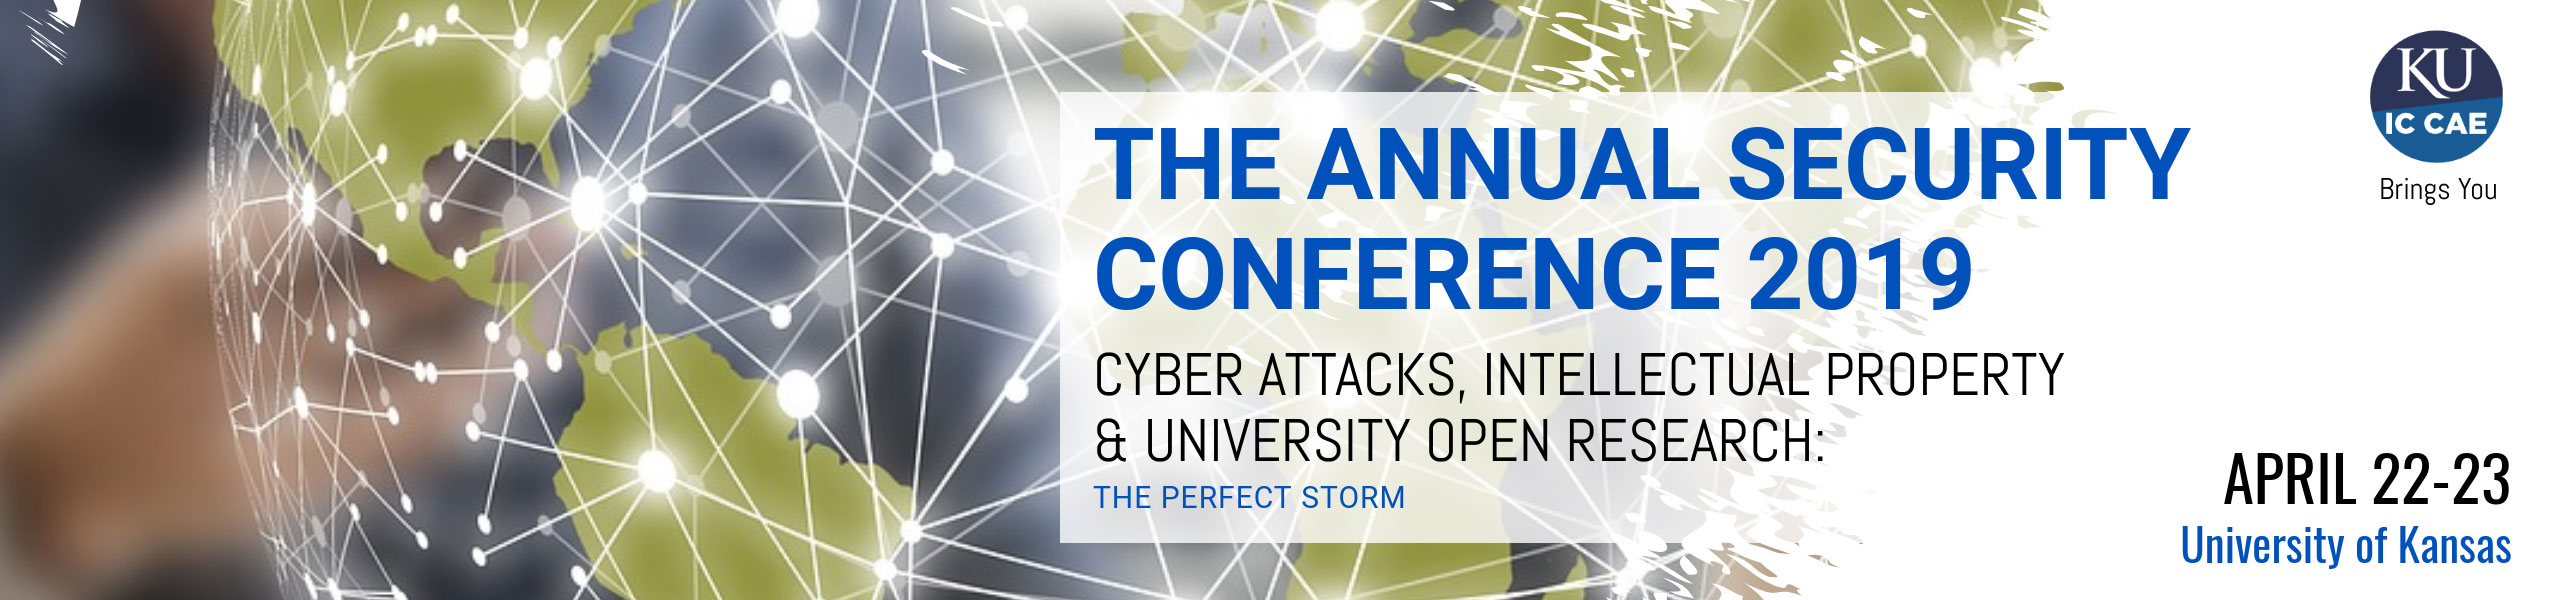 SecurityConf-banner-w